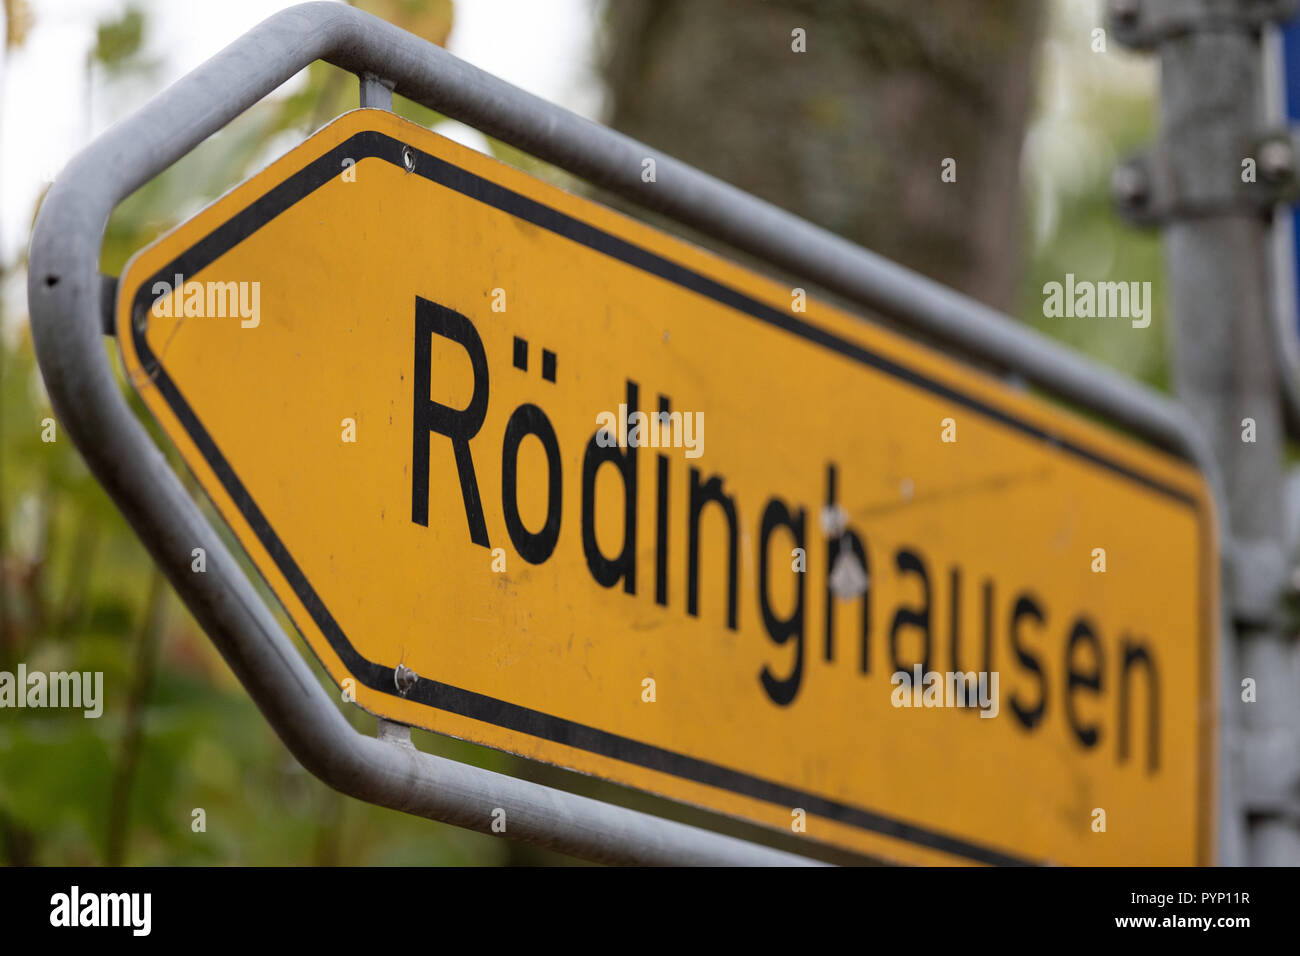 Roedinghausen, Germany. 29th Oct, 2018. Roedinghausen written on a traffic sign. SV Roedinghausen faces off against FC Bayern Munich in the 2nd round of the soccer DFB Cup. The game takes place in Osnabrueck. SV Roedinghausen is currently playing in the football regional league West. The home stadium is in the East Westphalian district of Herford in North Rhine-Westphalia. Credit: Friso Gentsch/dpa/Alamy Live News Stock Photo